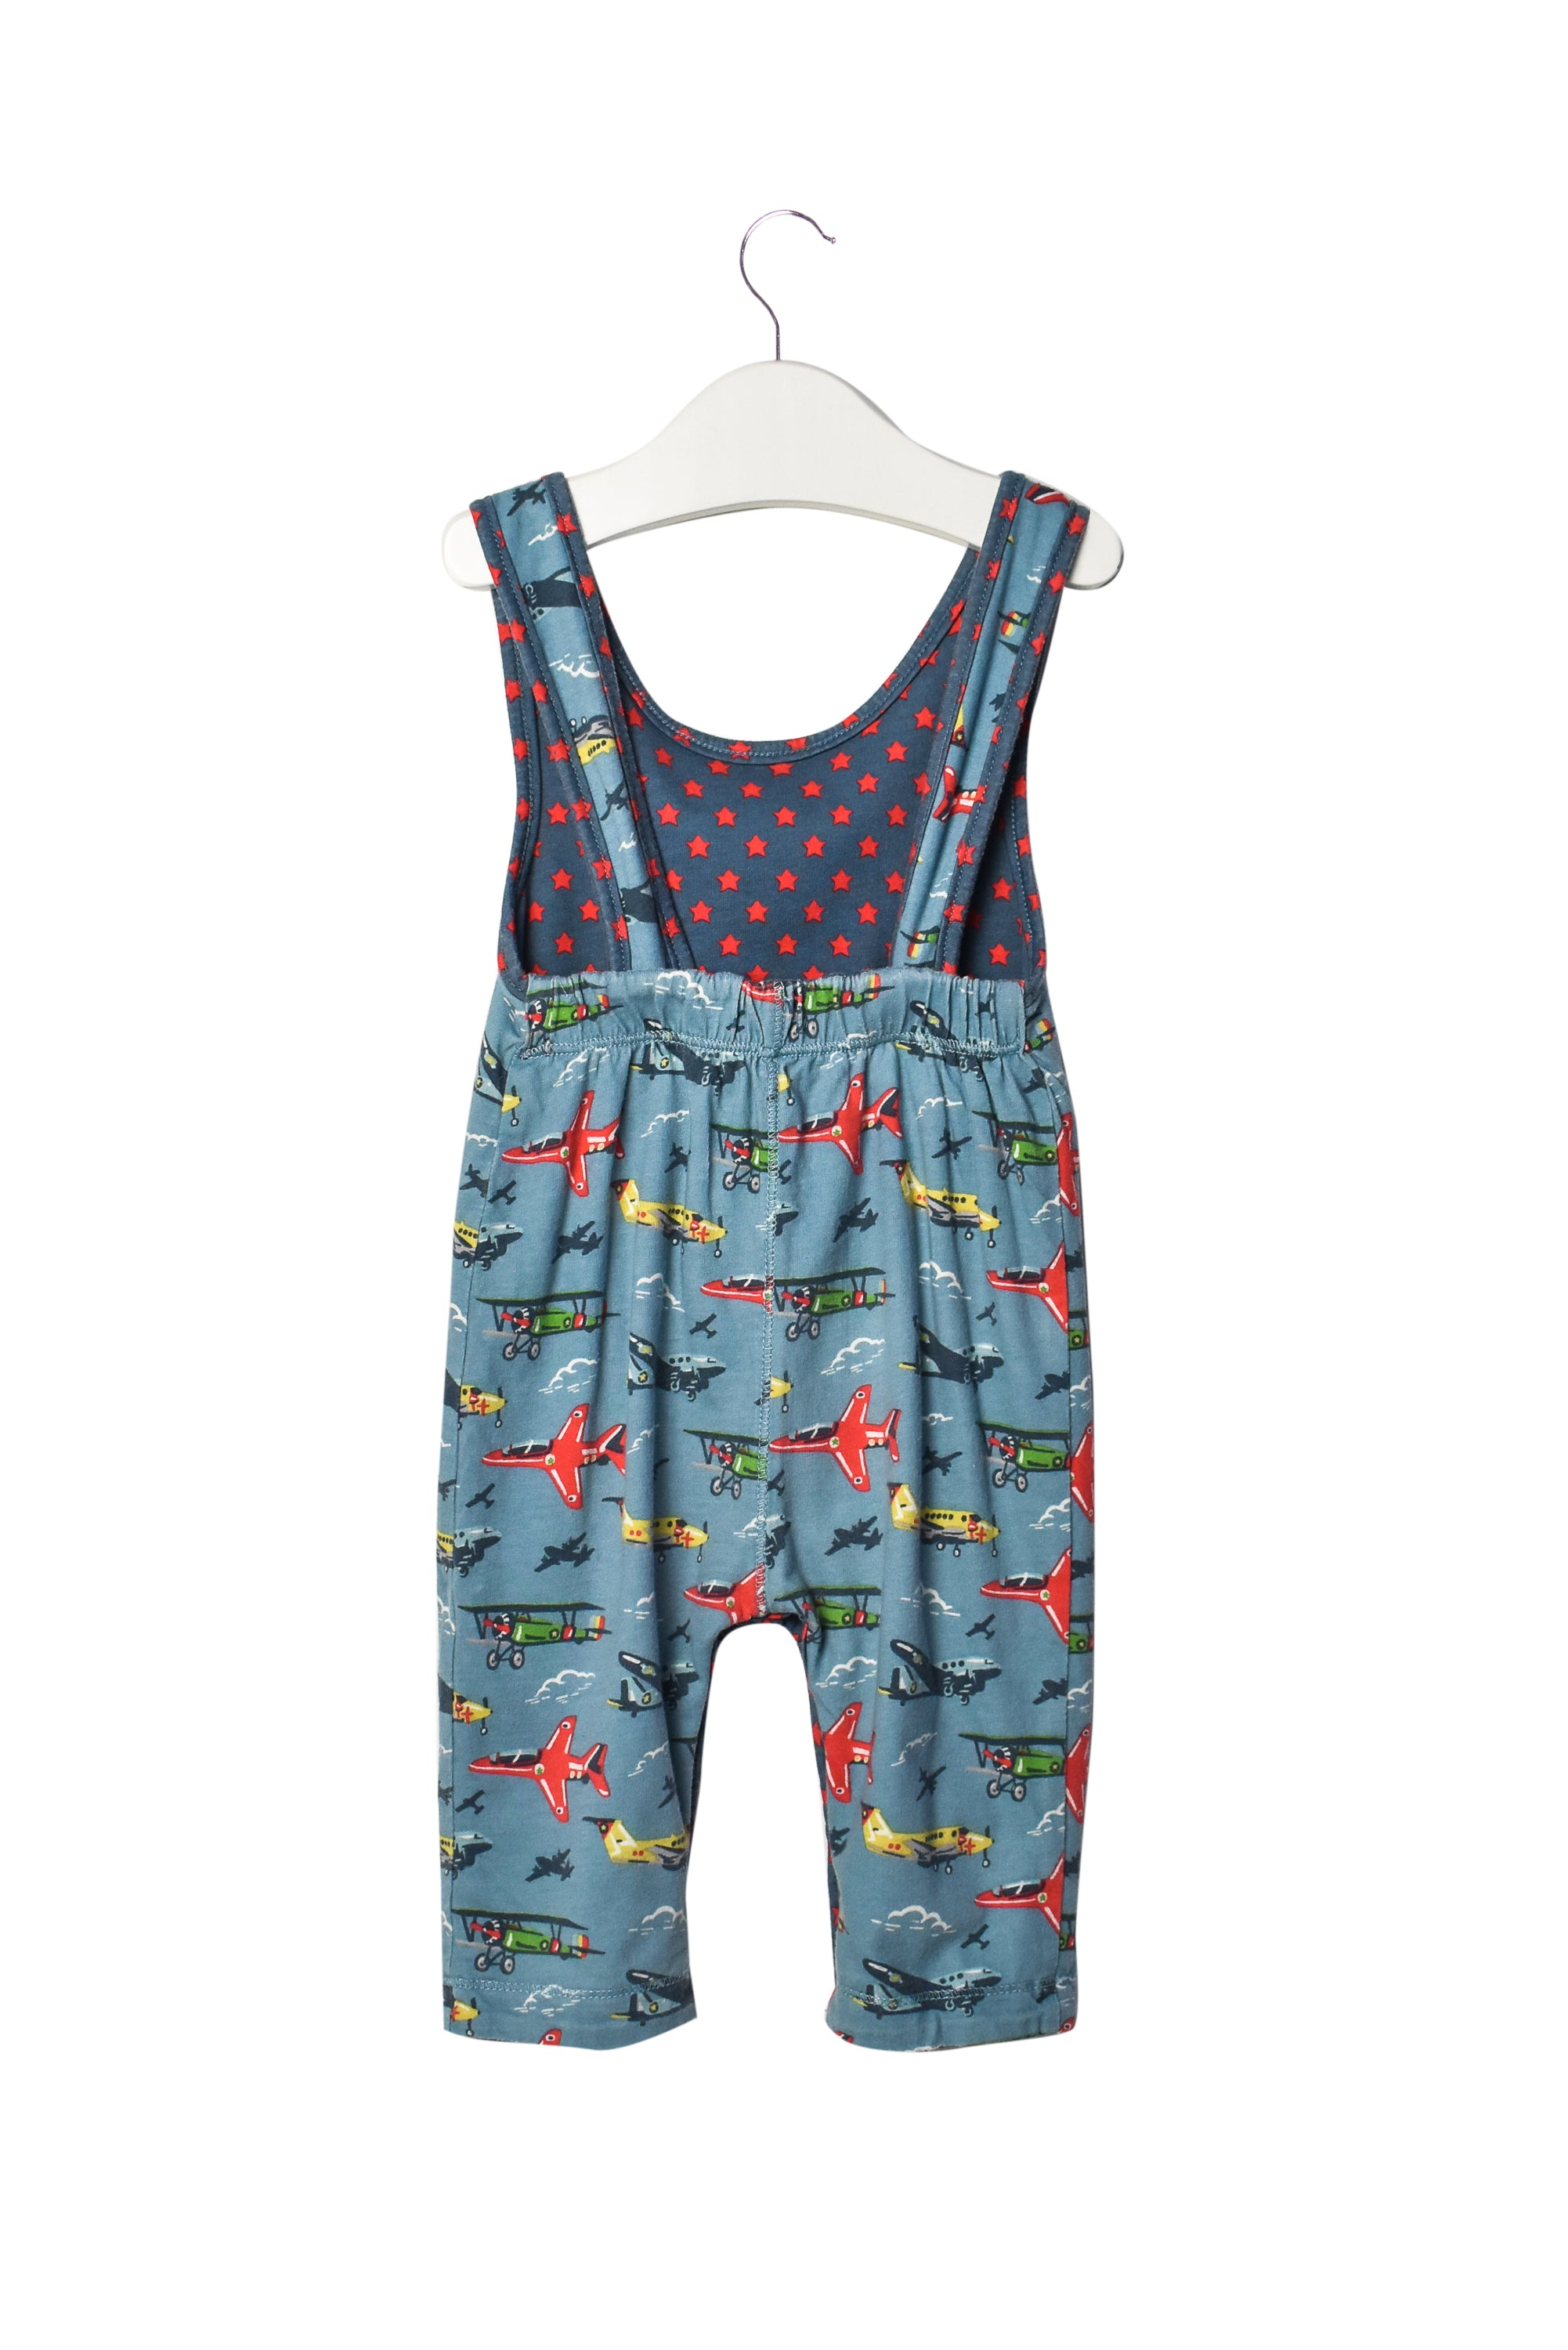 10006842 Cath Kidston Baby~Overall 3-6M at Retykle